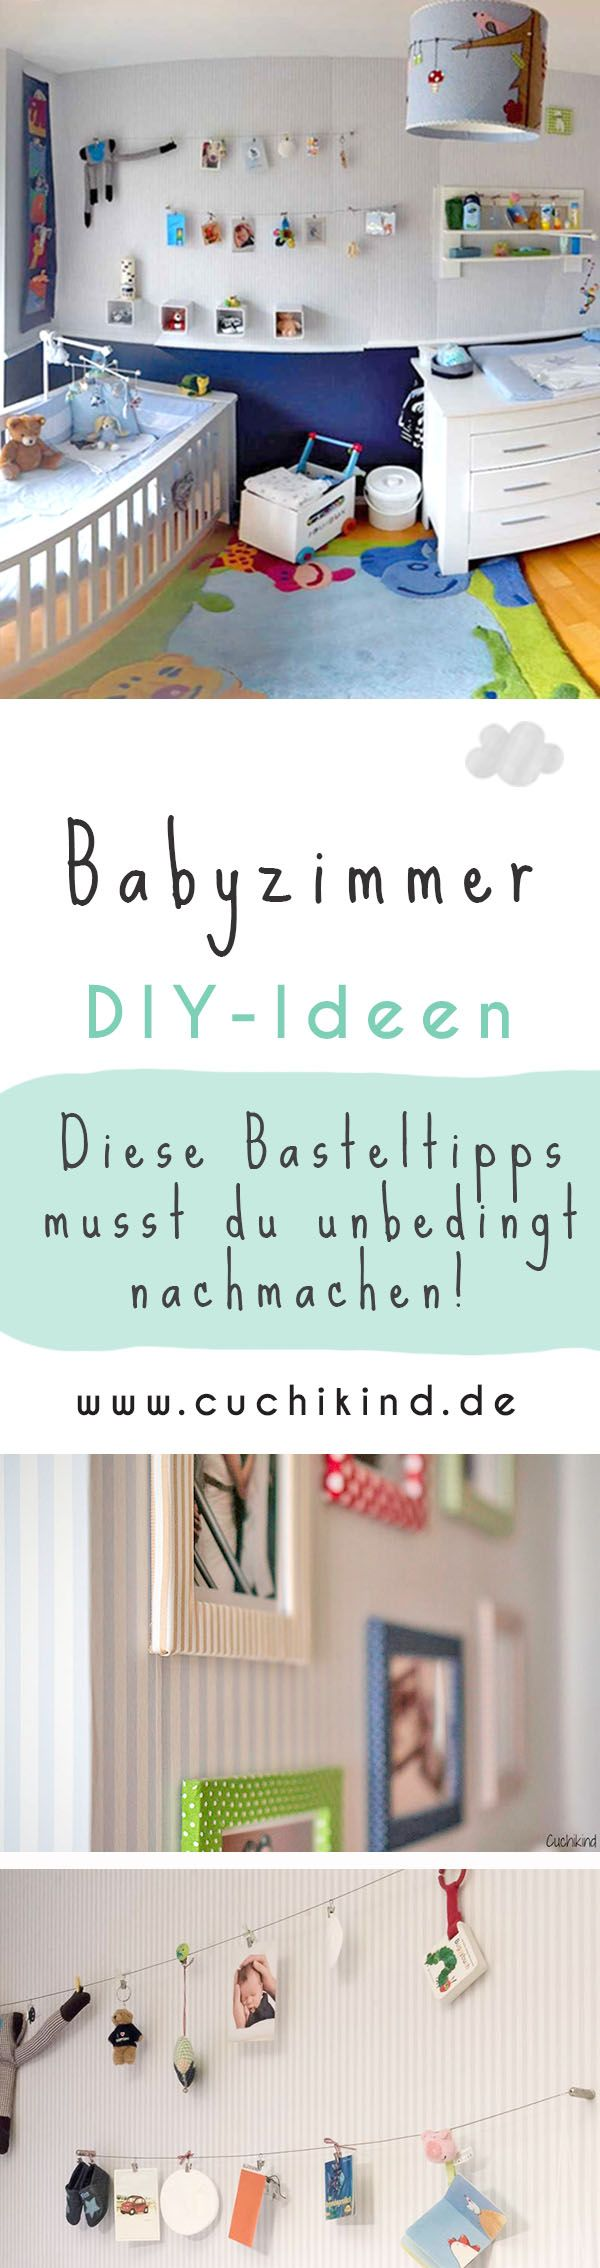 babyzimmer diy 3 h ngesystem pinterest lampenschirm selber machen lampenschirme und. Black Bedroom Furniture Sets. Home Design Ideas